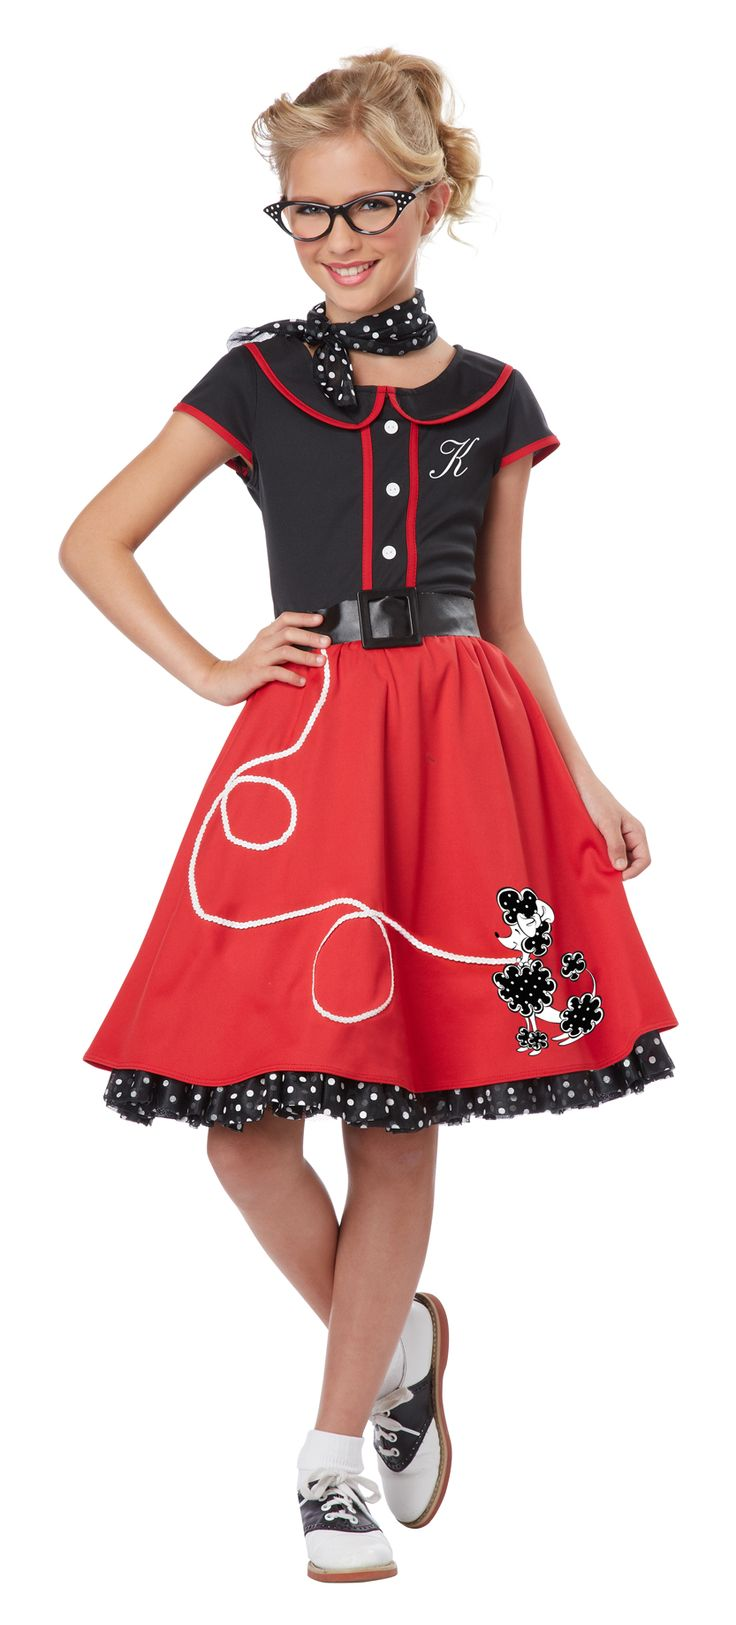 50s Sweetheart Girls Sock Hop Costume